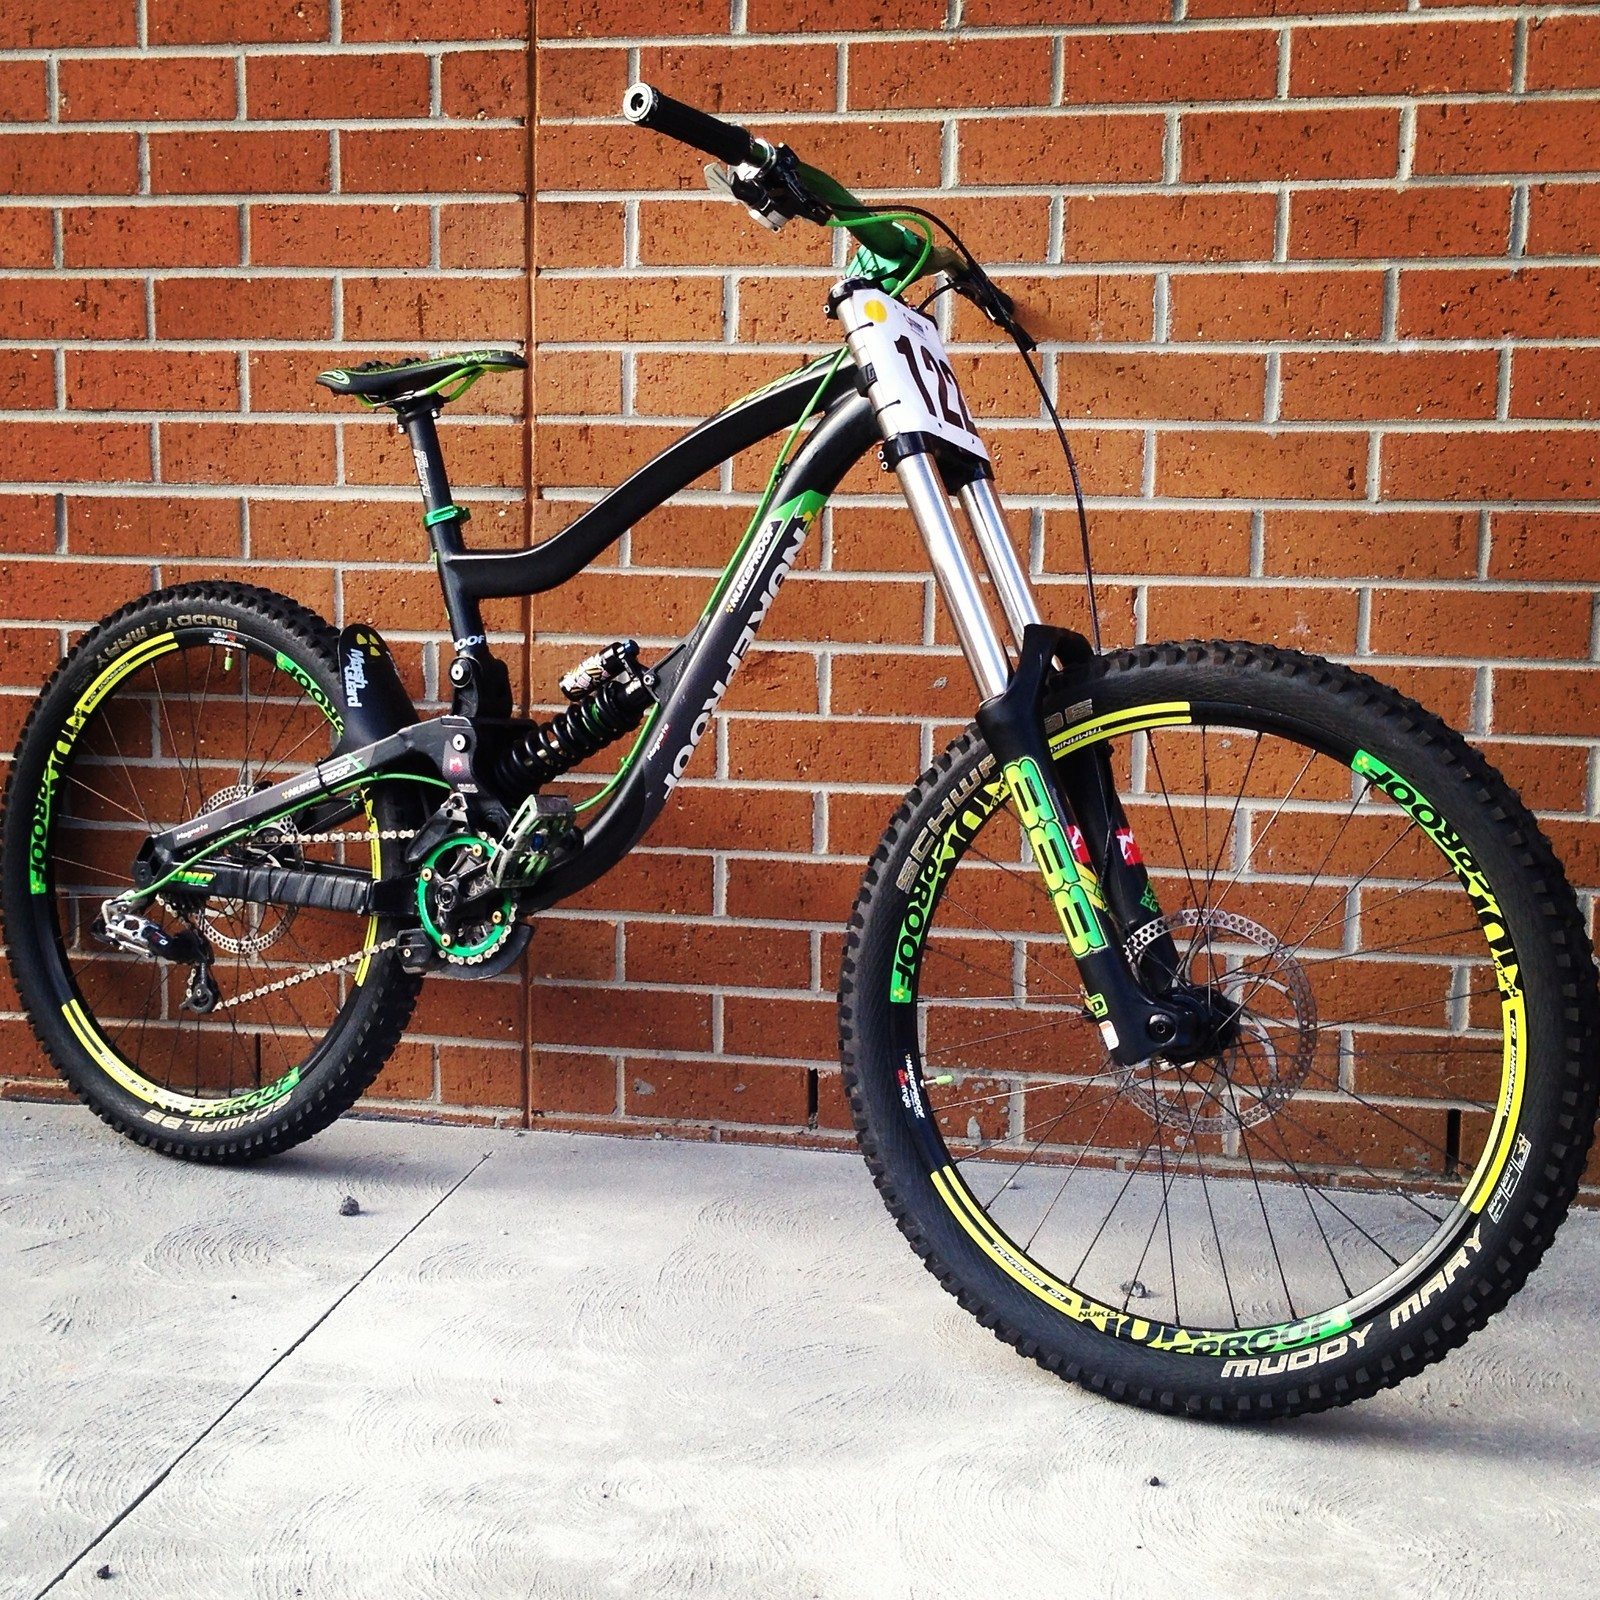 2011 Nukeproof Scalp with fully customised decals